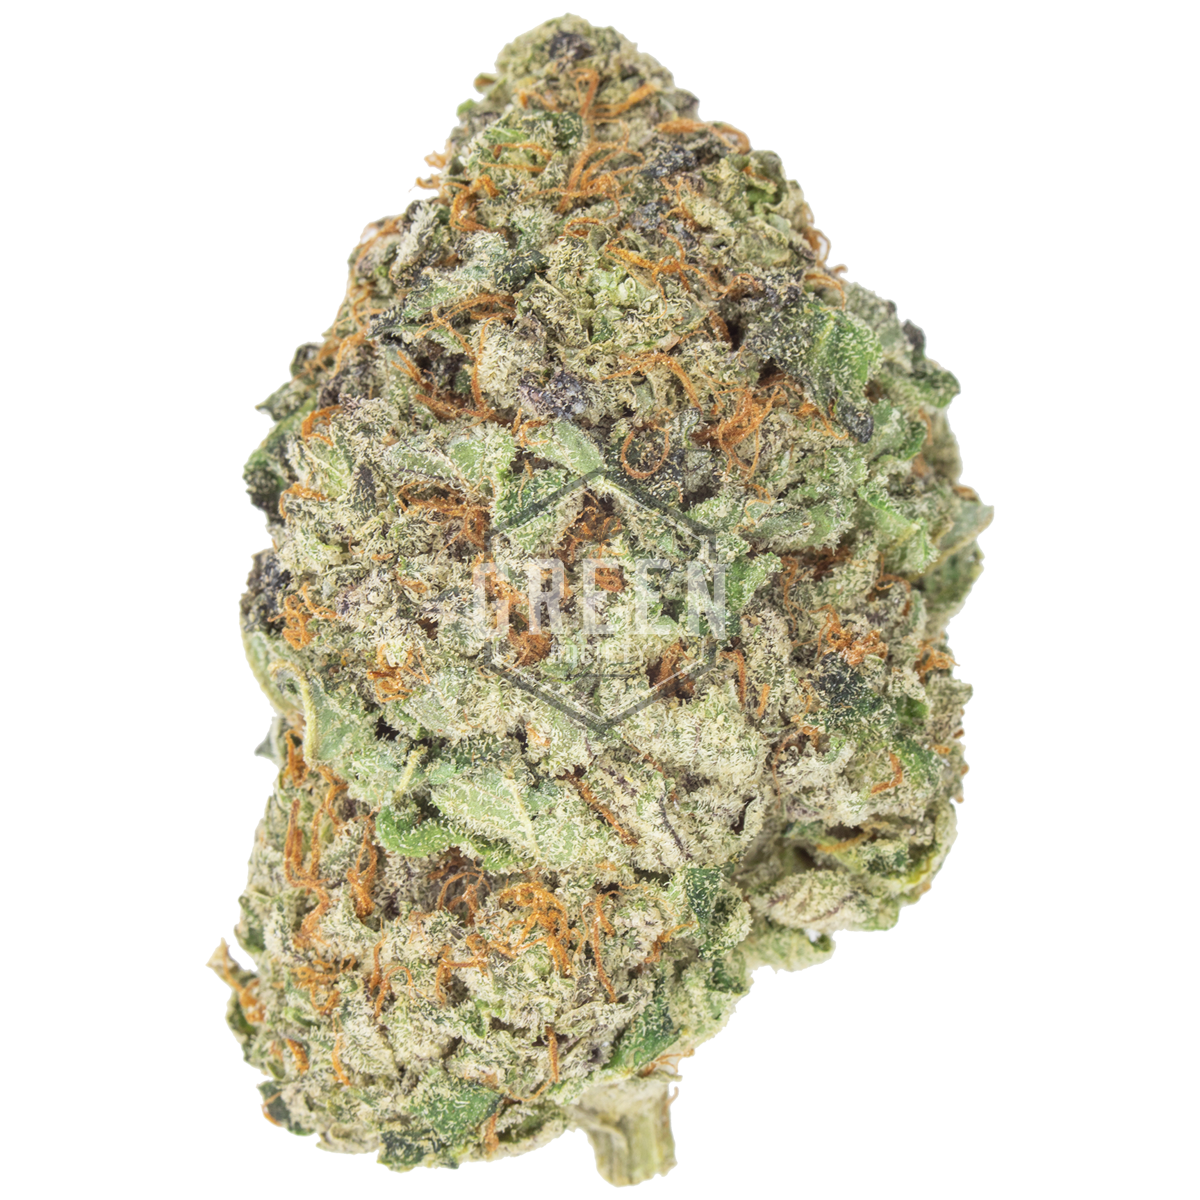 Panda OG 28 Gram Special by Green Society - Image © 2018 Green Society. All Rights Reserved.